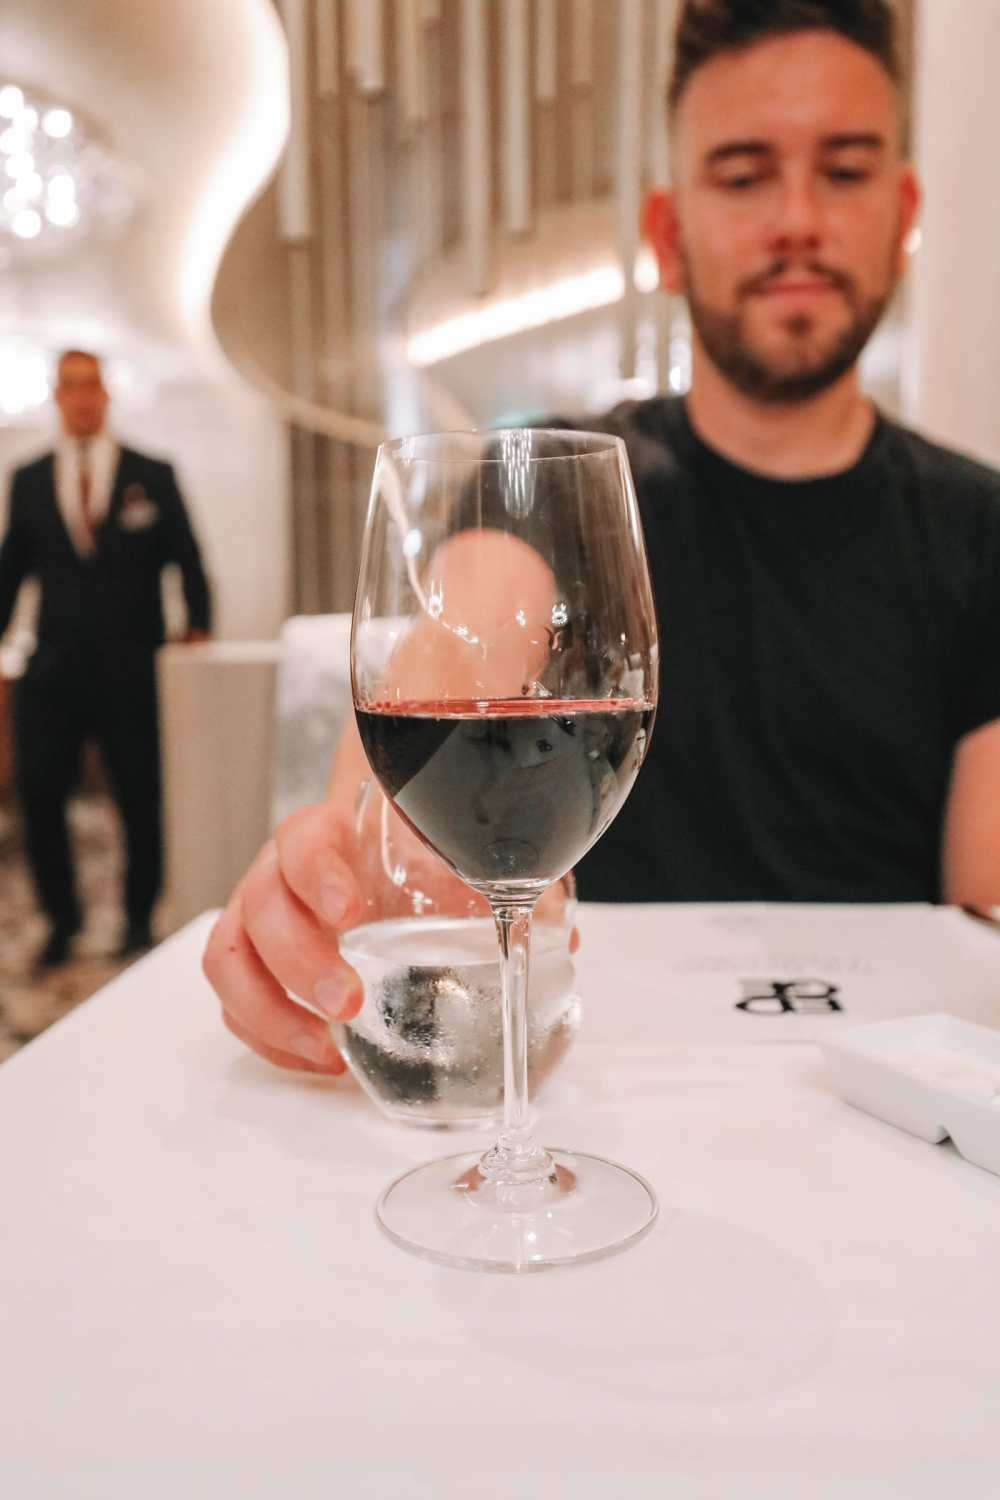 Celebrity Edge Cruise: What Is It Really Like? (46)